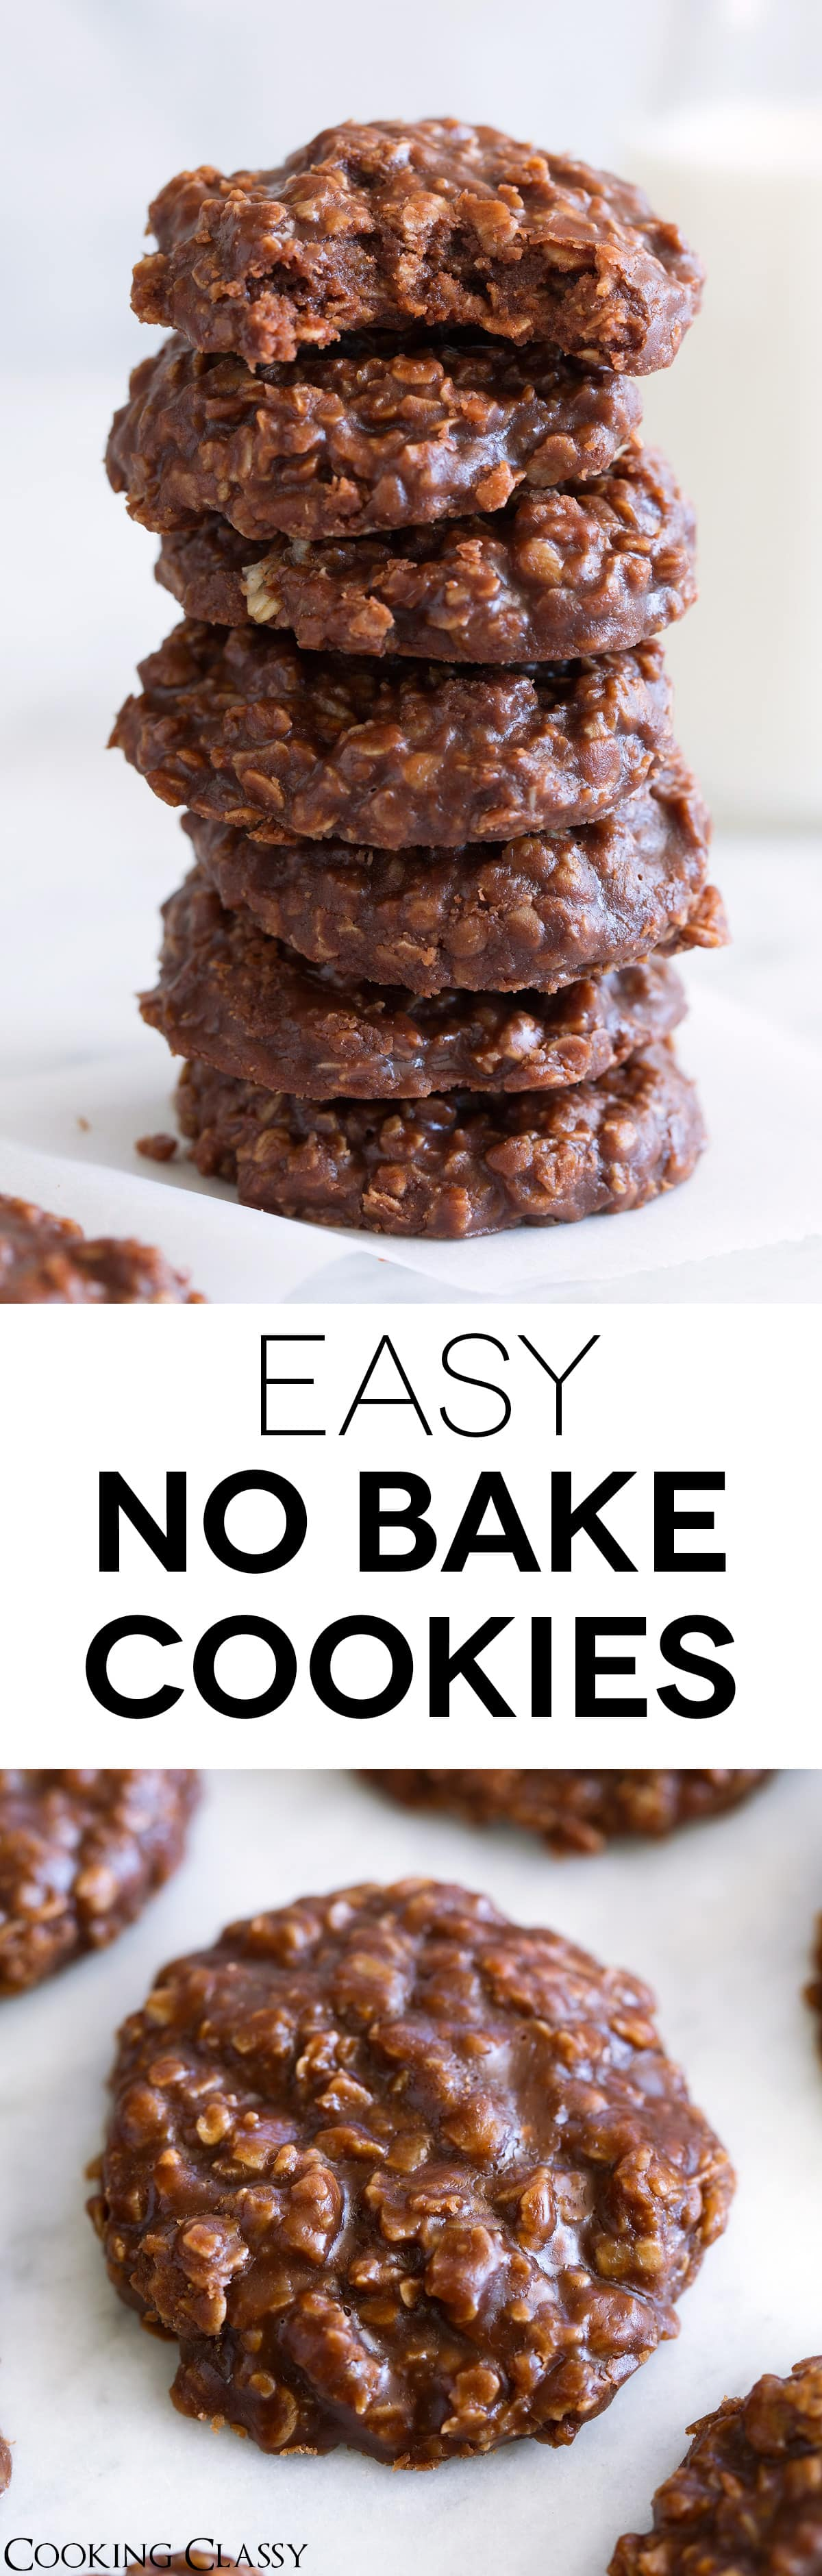 NO BAKE COOKIES. A super fast, super easy to make cookie made with chewy oatmeal, rich cocoa and creamy peanut butter. They're perfectly fudgy and always just too good to resist! A childhood favorite that I'm still making all the time. #nobakecookies #cookies #recipe #chocolatecookies #oatmealcookies #recipe